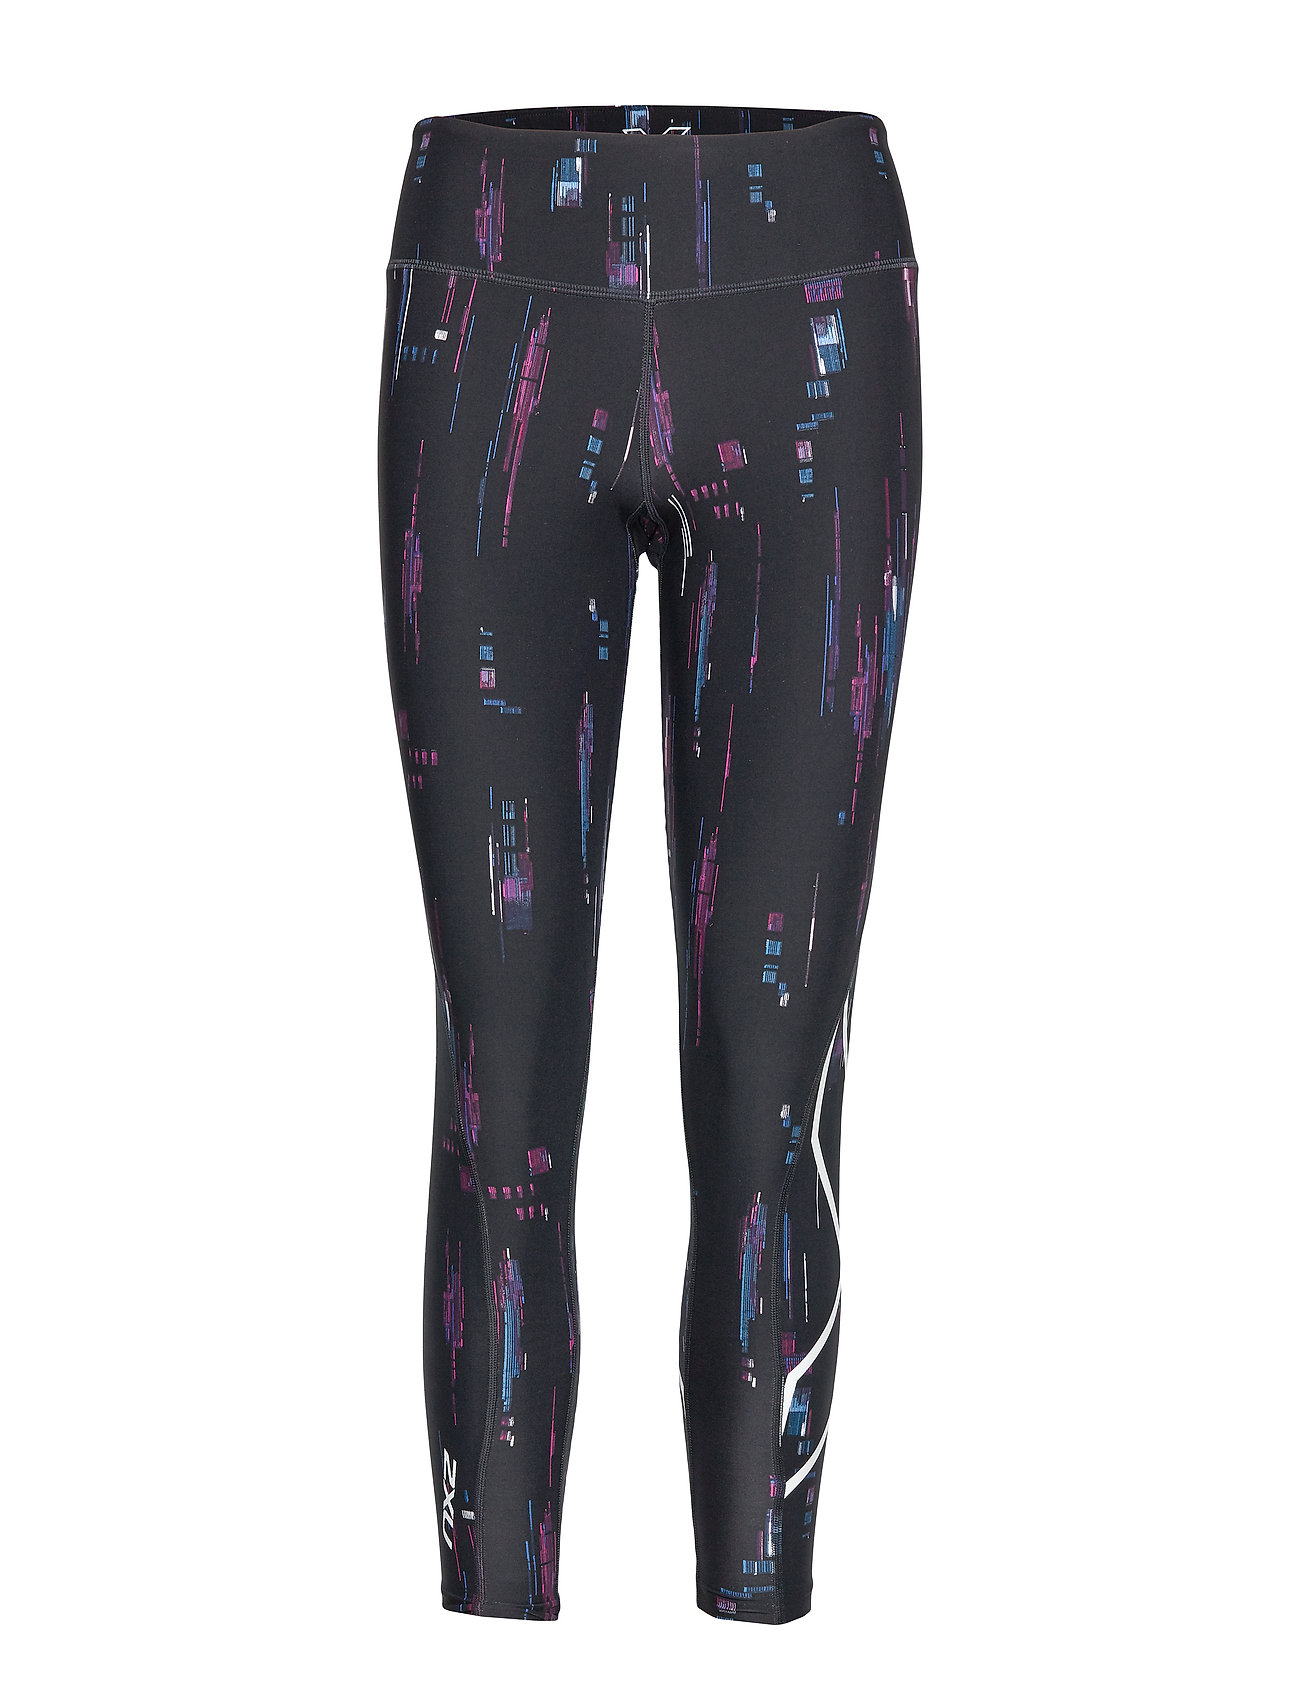 2XU Print Mid-Rise Comp Tights-W - FREQUENCY BOYSENBERRY/WHITE